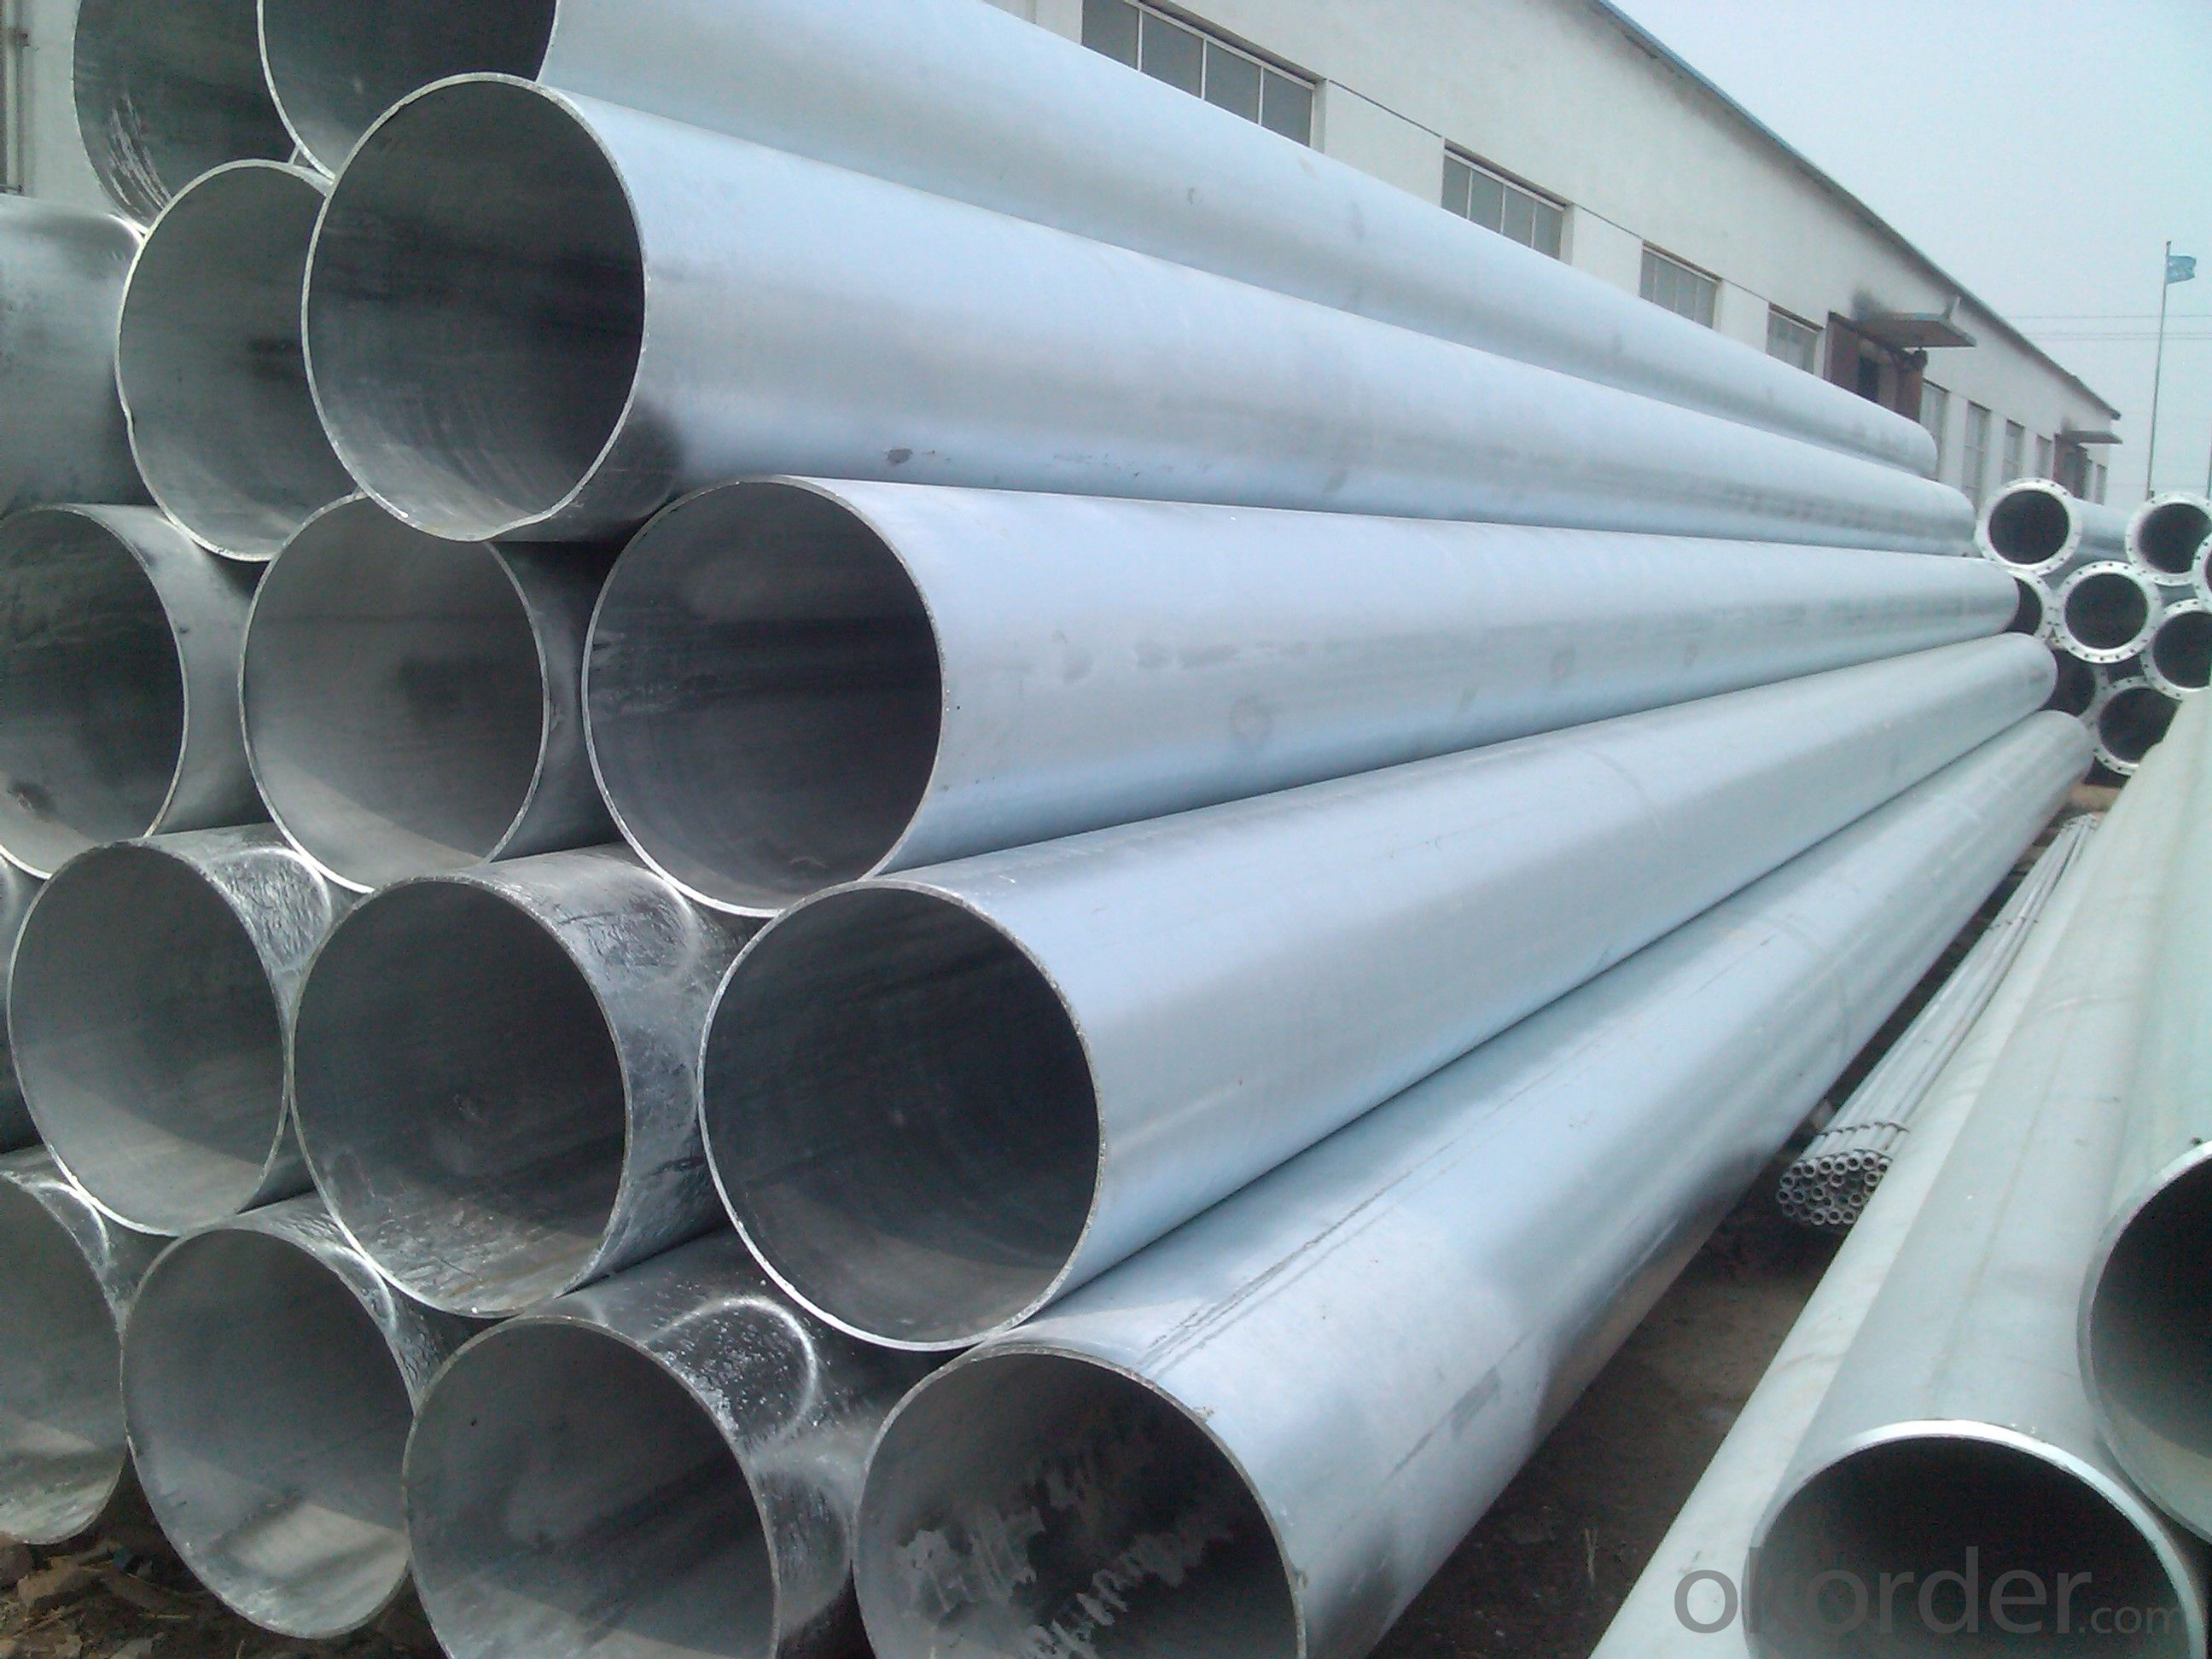 Large Diameter Corrugated Welding Steel Pipe